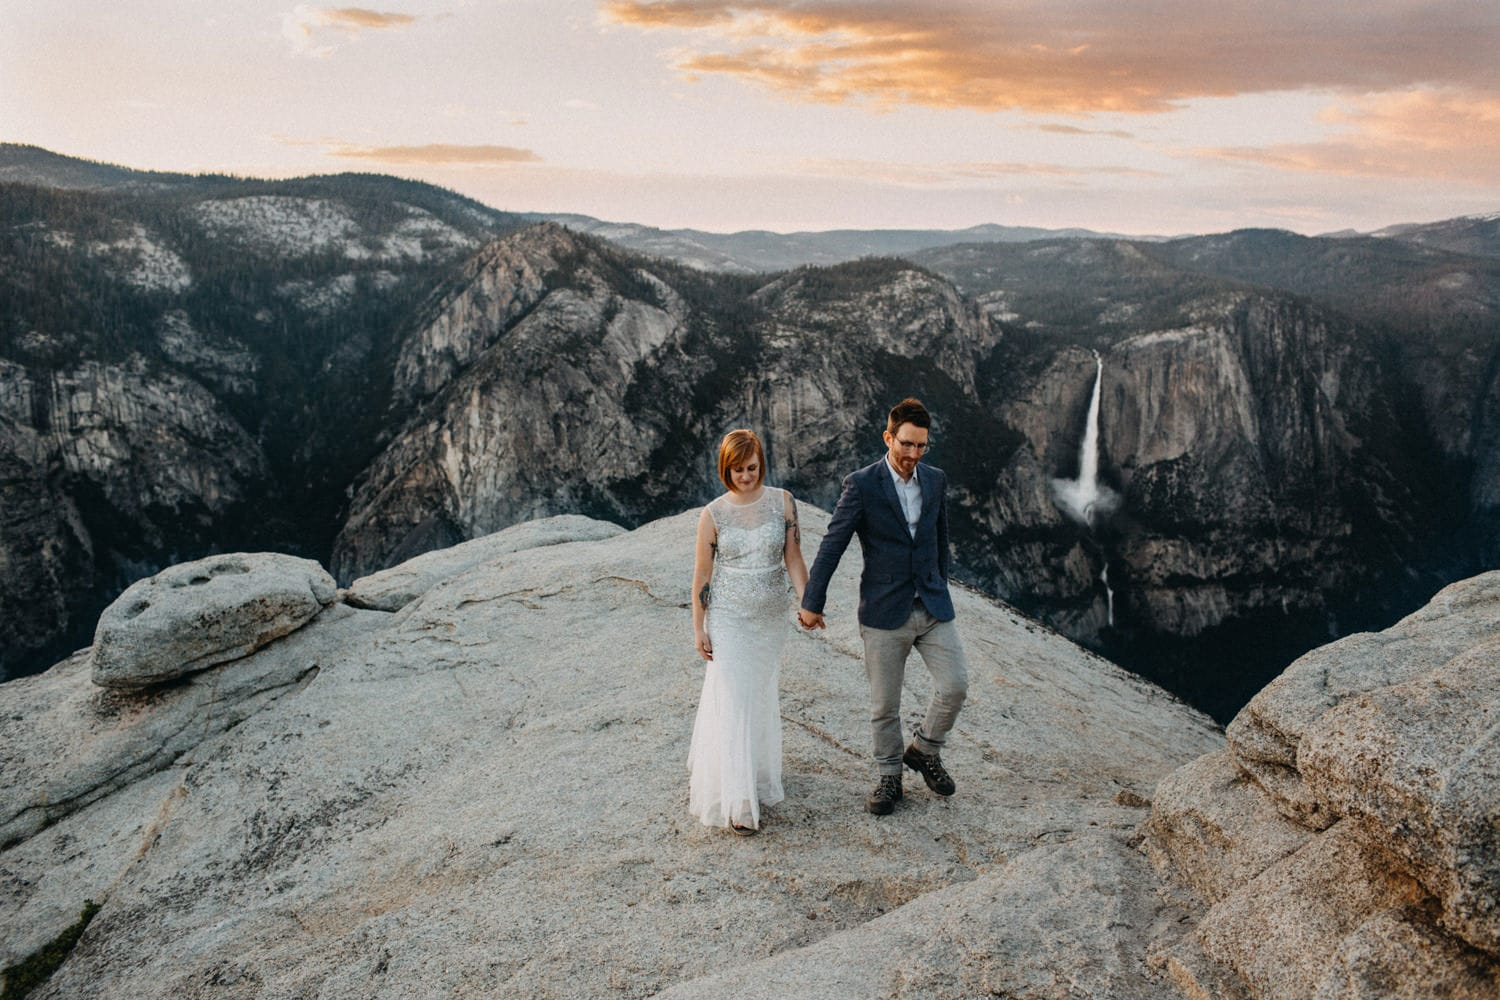 Anjali and Ben atop Taft Point at sunset for their Yosemite Elopement with Upper Yosemite Falls in the background